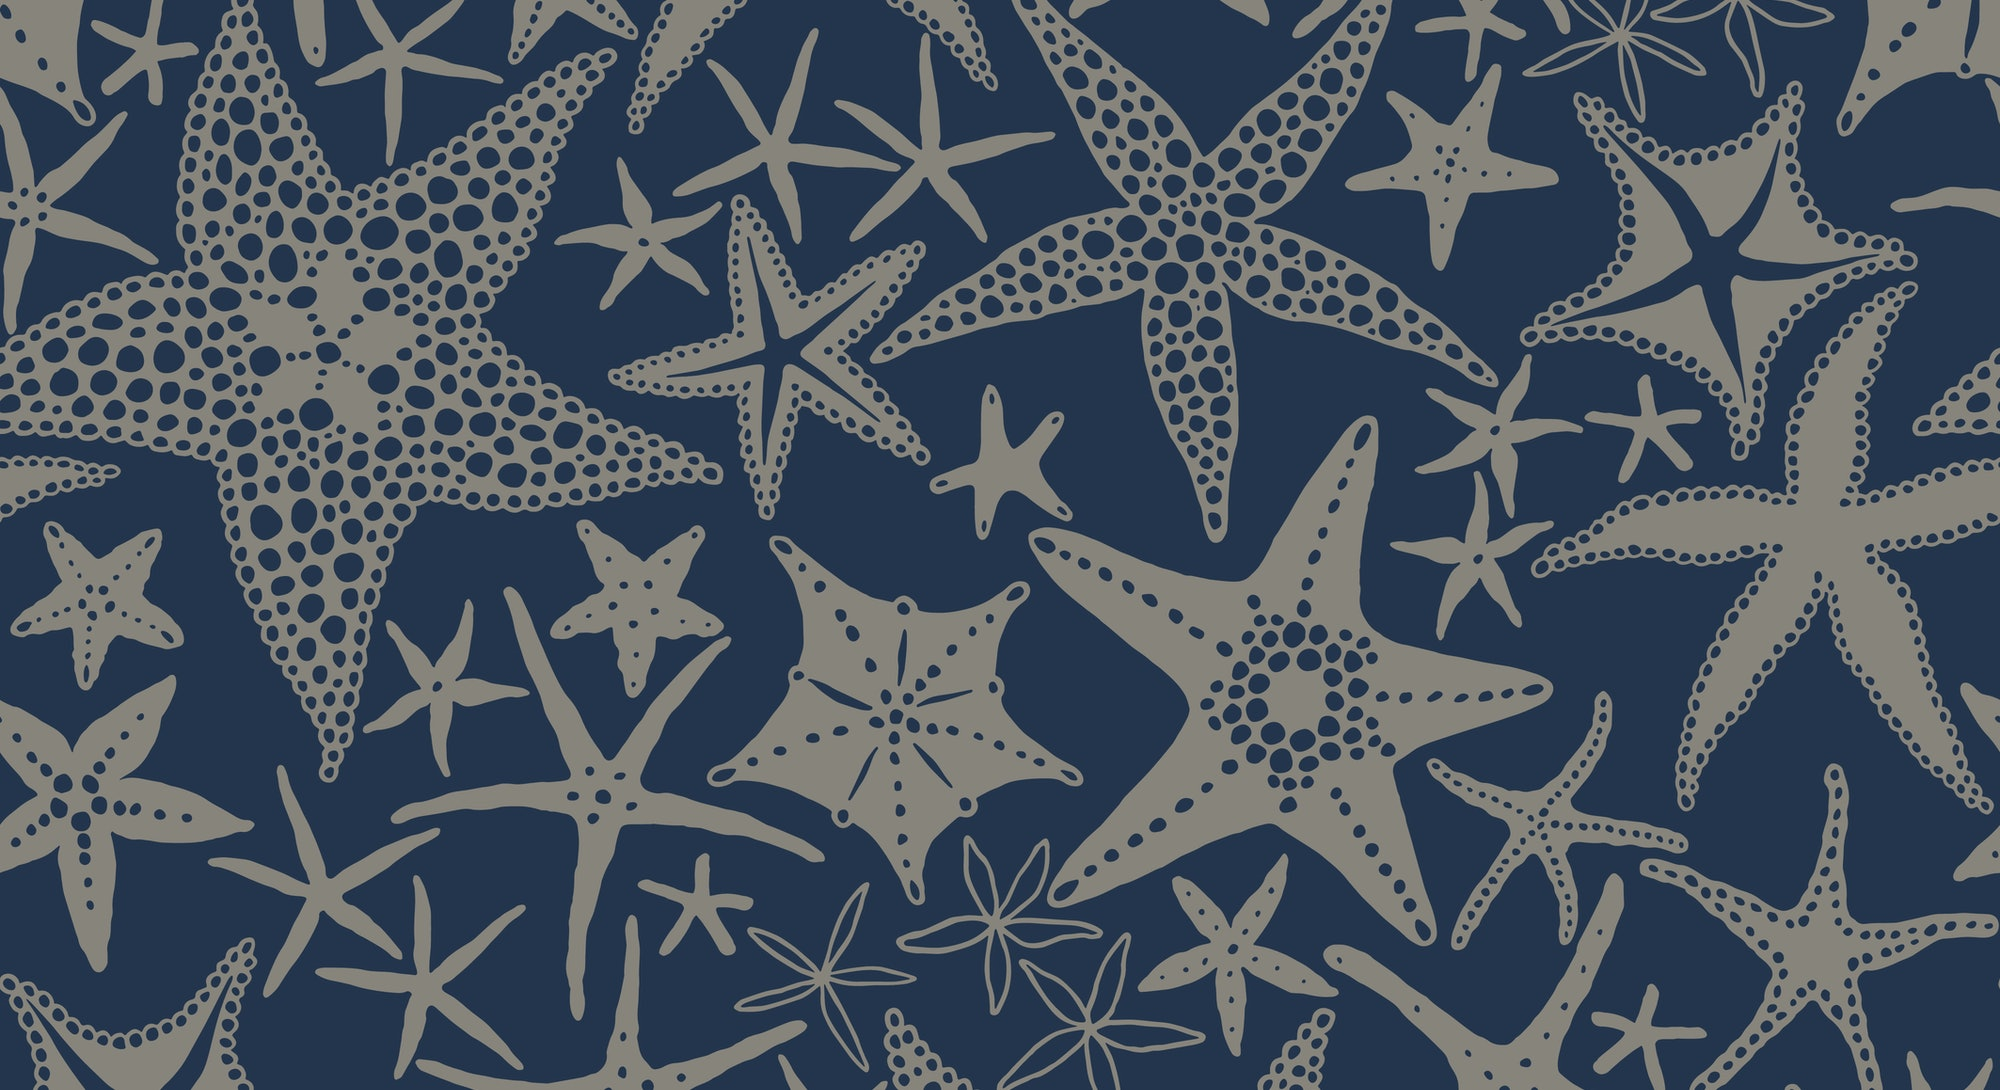 Starfishes on blue background, seamless doodle pattern with scattered abstract sea stars. Vector hand drawn illustration in vintage style.